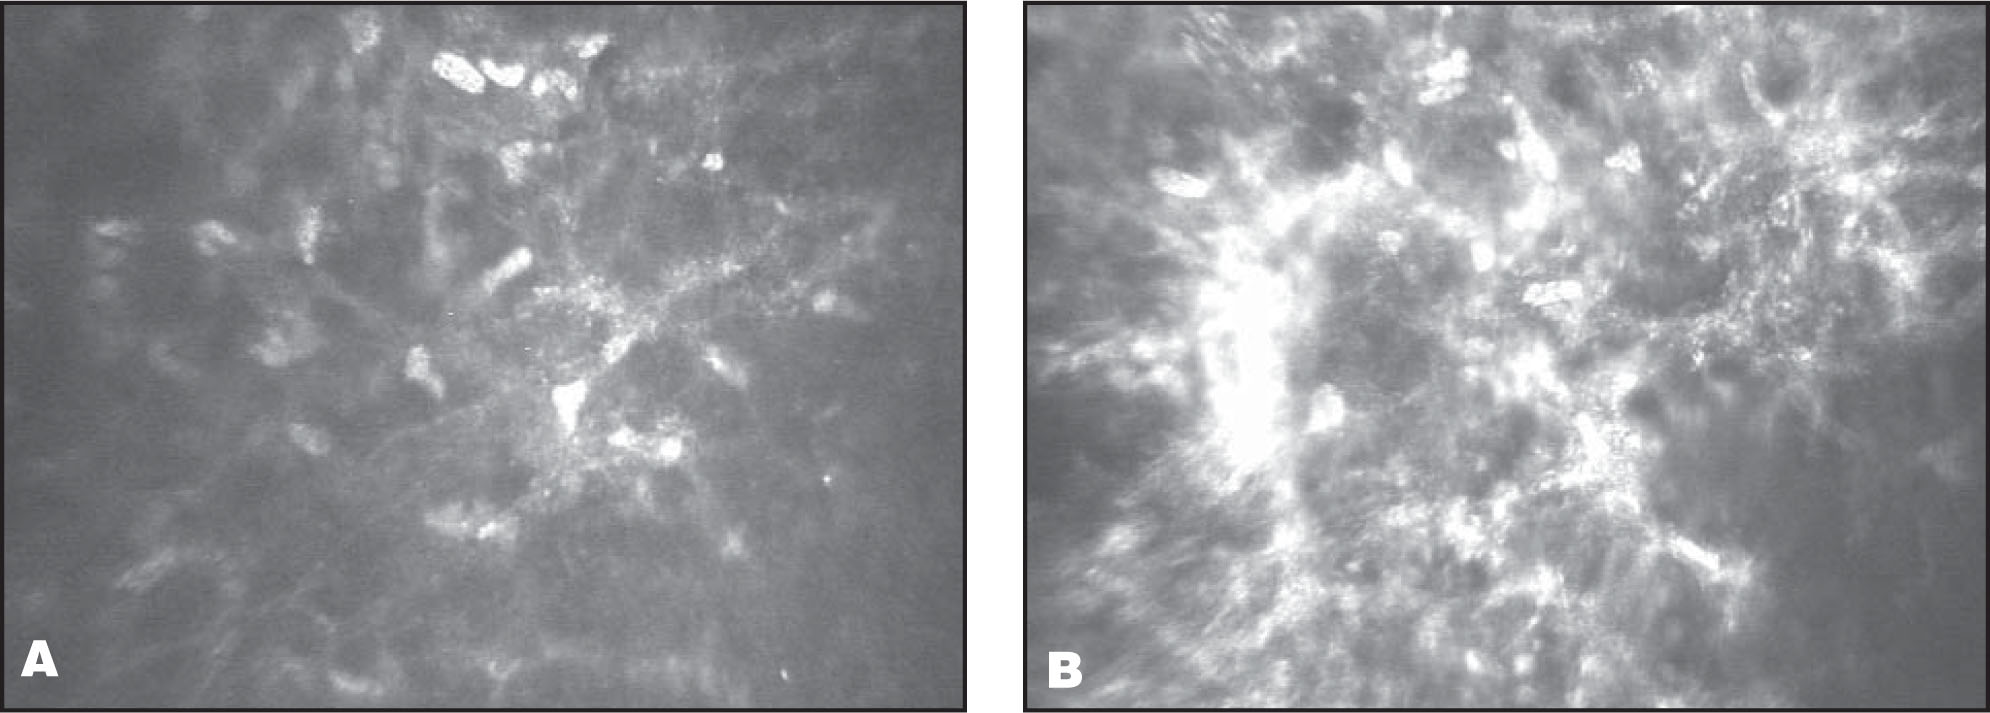 Confocal image of the anterior stroma activated keratocytes (A) 2 weeks (340 × 255 μm) and (B) 1 month (340 × 255 μm) after surgery.